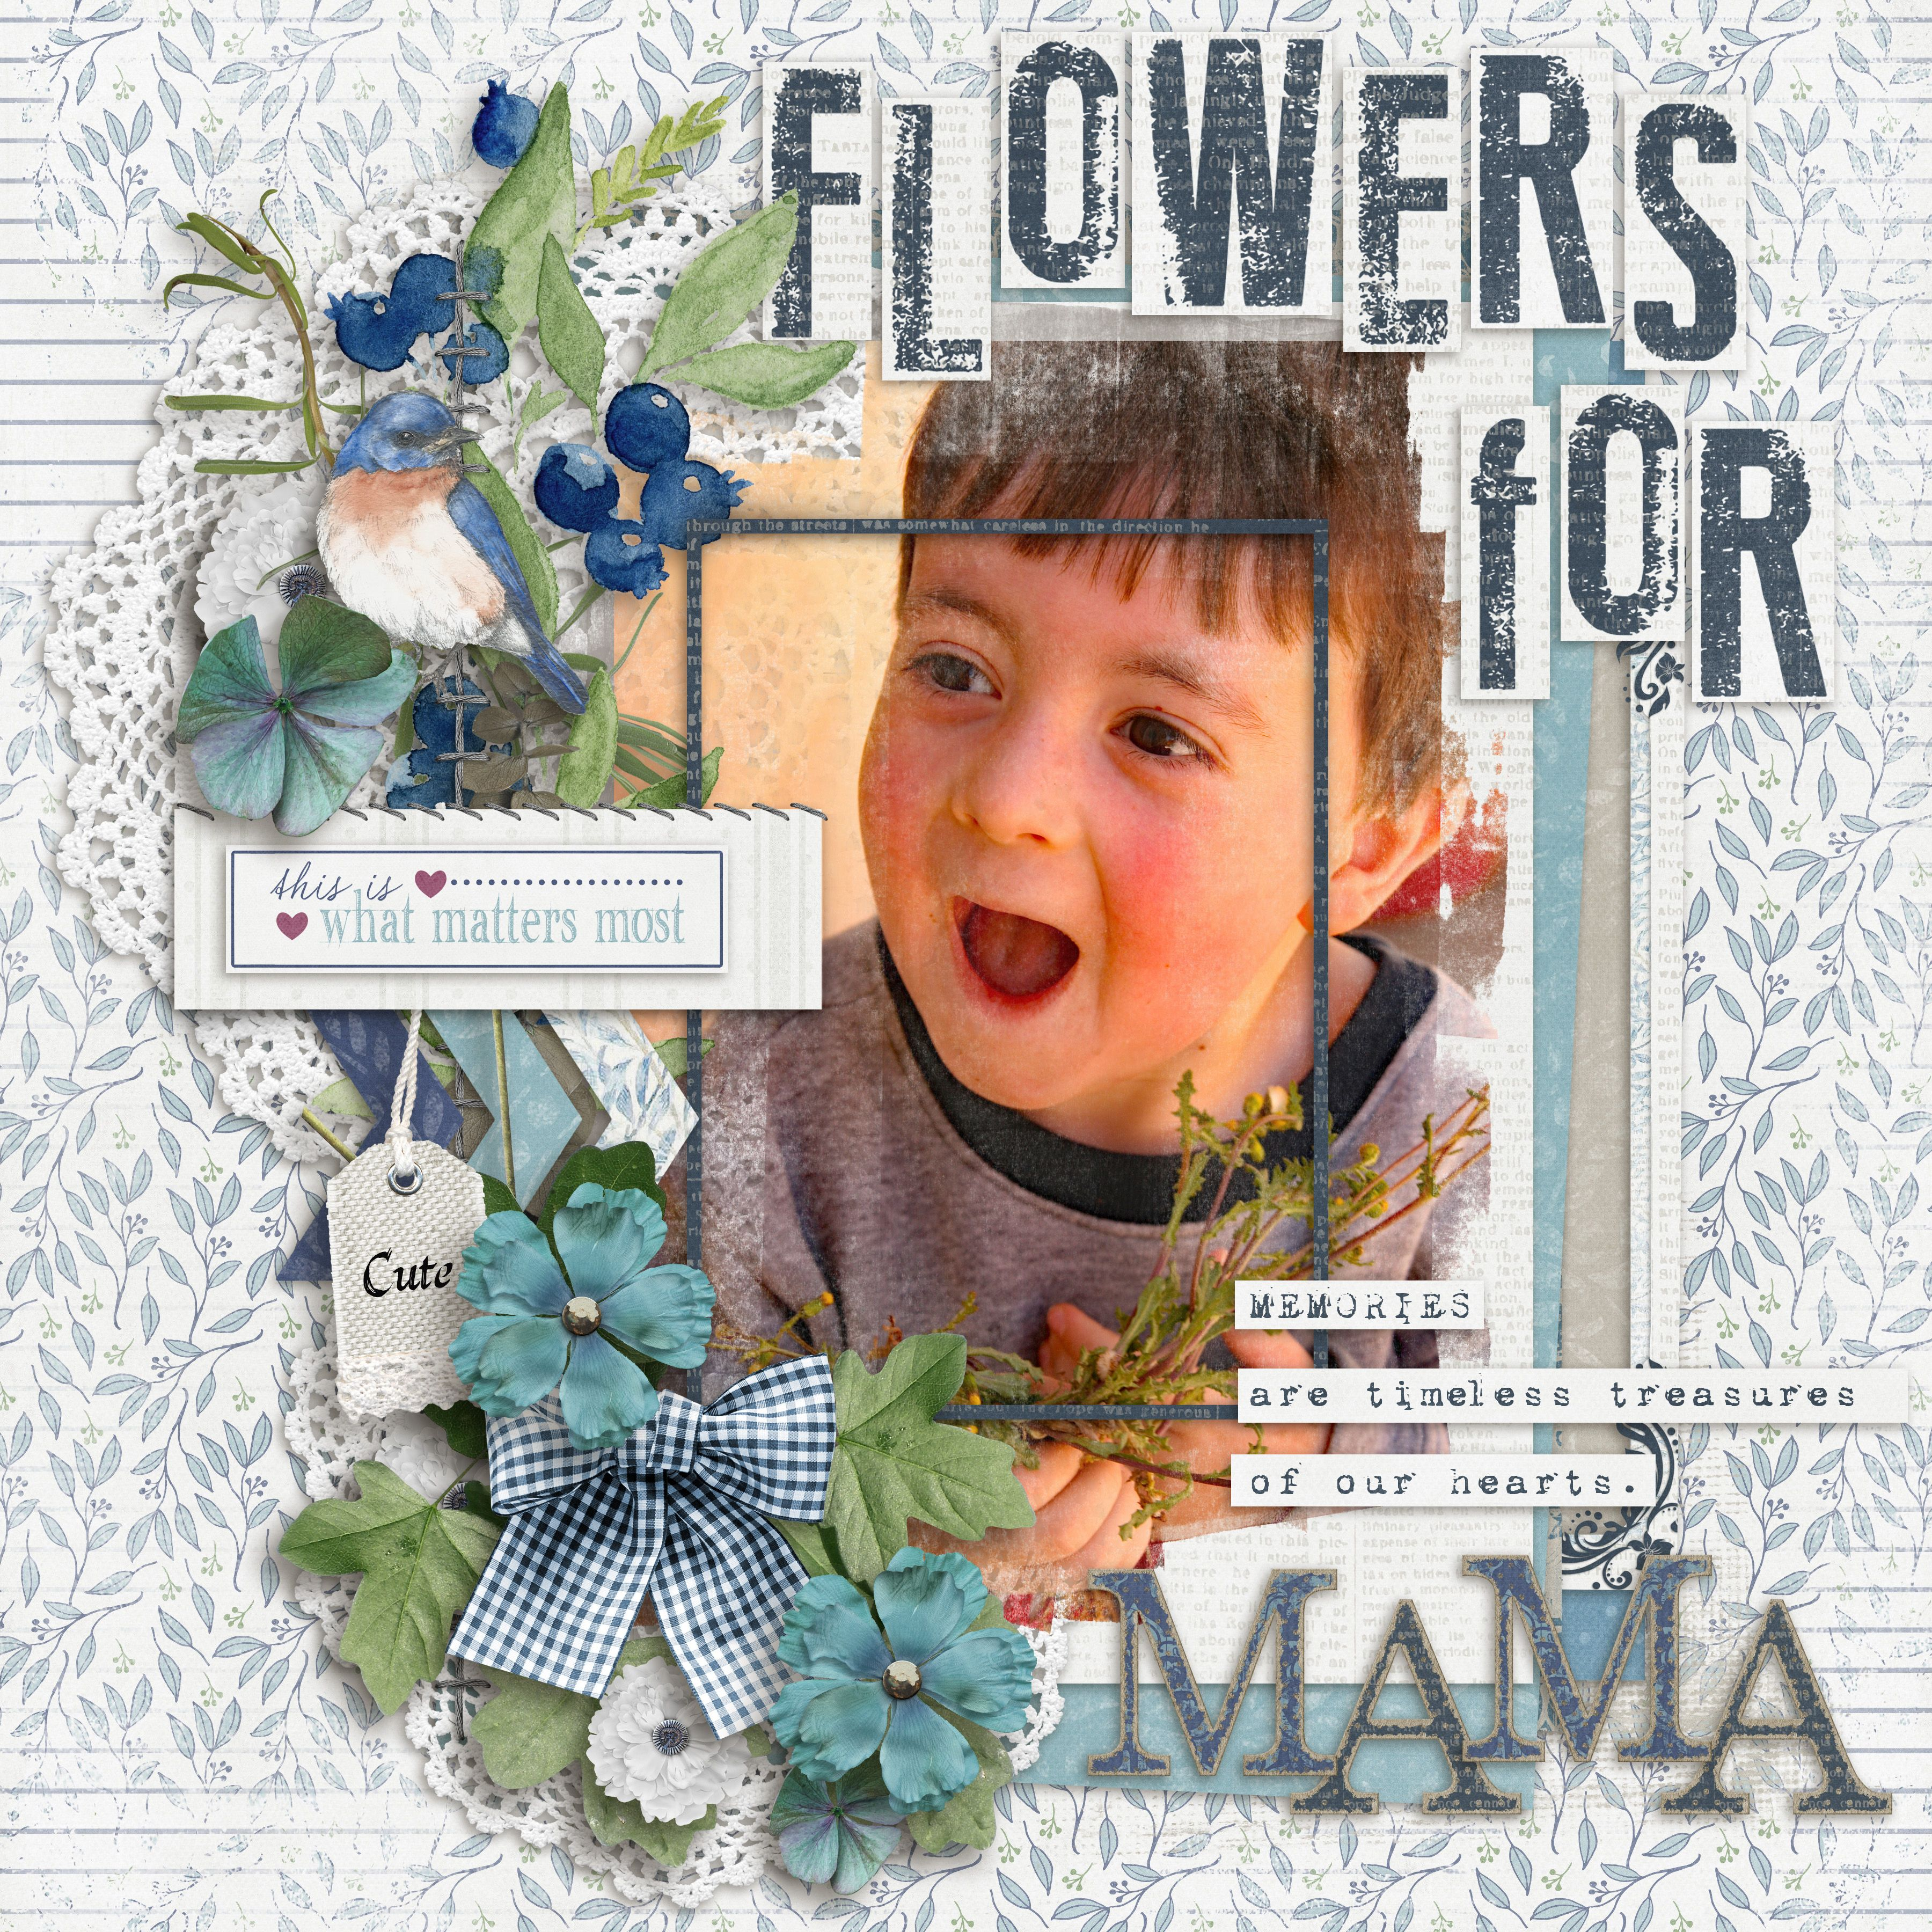 Micah was so excited to give his mom the fistful of dandelions he found.  He was such a dear! I used BLUE WILLOW COLLECTION from KIMERIC KREATIONS found here:  http://www.thedigichick.com/shop/Blue-Willow-collection.html and a template from her LAYER IT PACK found here: http://www.thedigichick.com/shop/Layer-It-templates.html